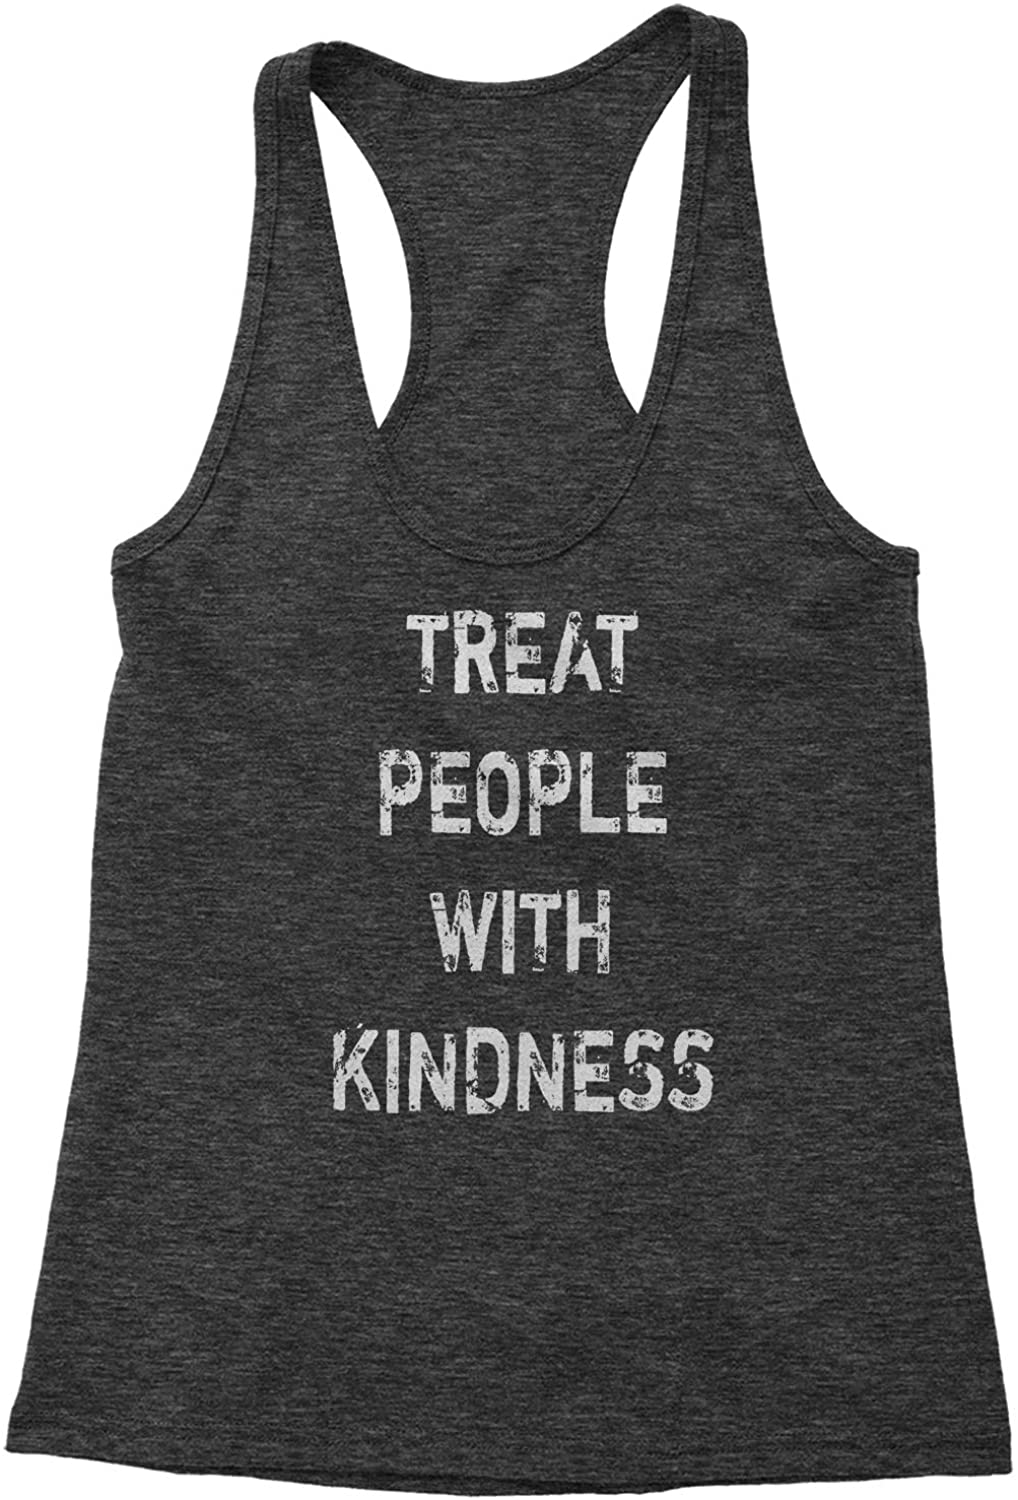 Expression Tees Treat People with Kindness Triblend Racerback Tank Top for Women